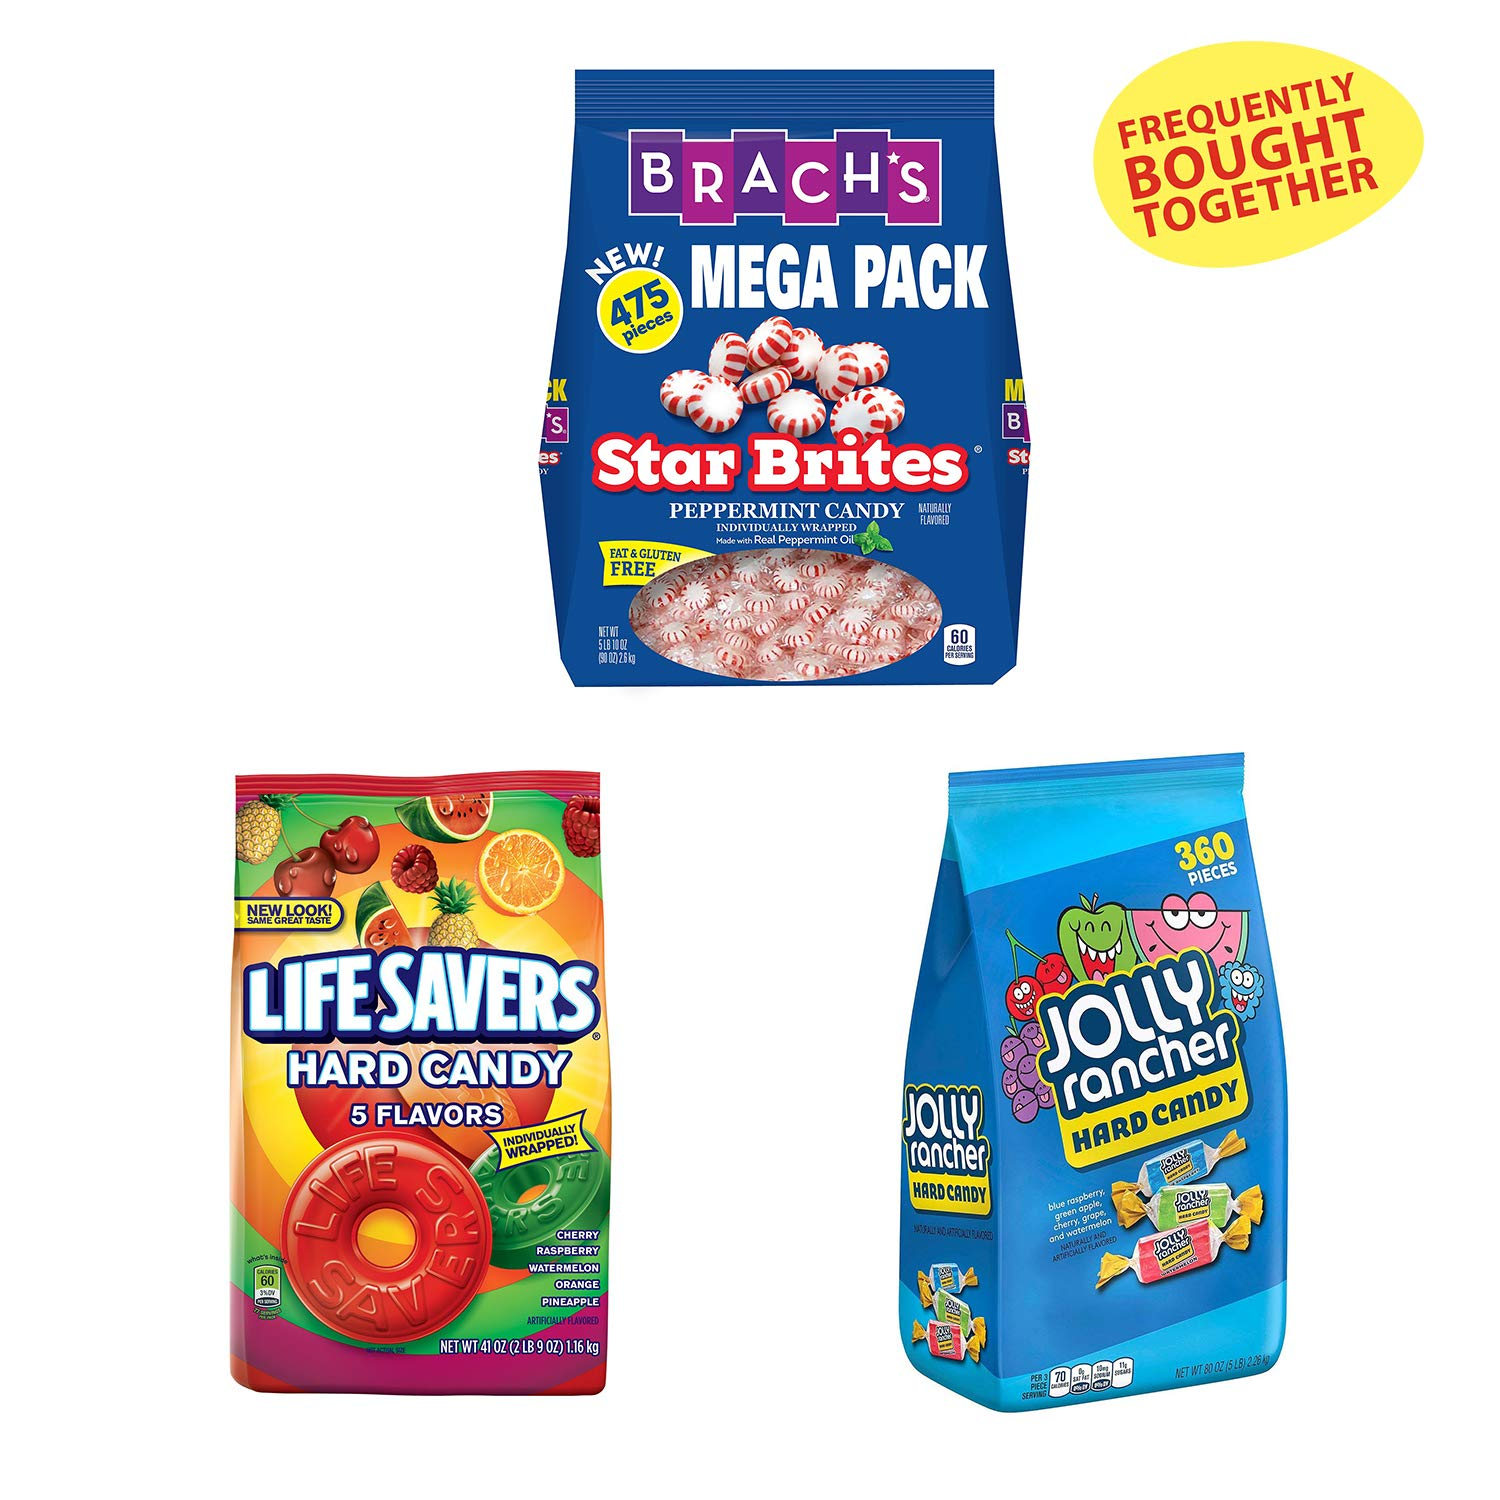 Life Savers Hard Candy Bag Five Flavors (41 Ounce, 2 Pack), Jolly Rancher Bulk Halloween (5 Pounds) and Brach's Star Brites Peppermint Candy (5.63 Pound, Individually Wrapped Bulk Holiday Candy) by Life Savers